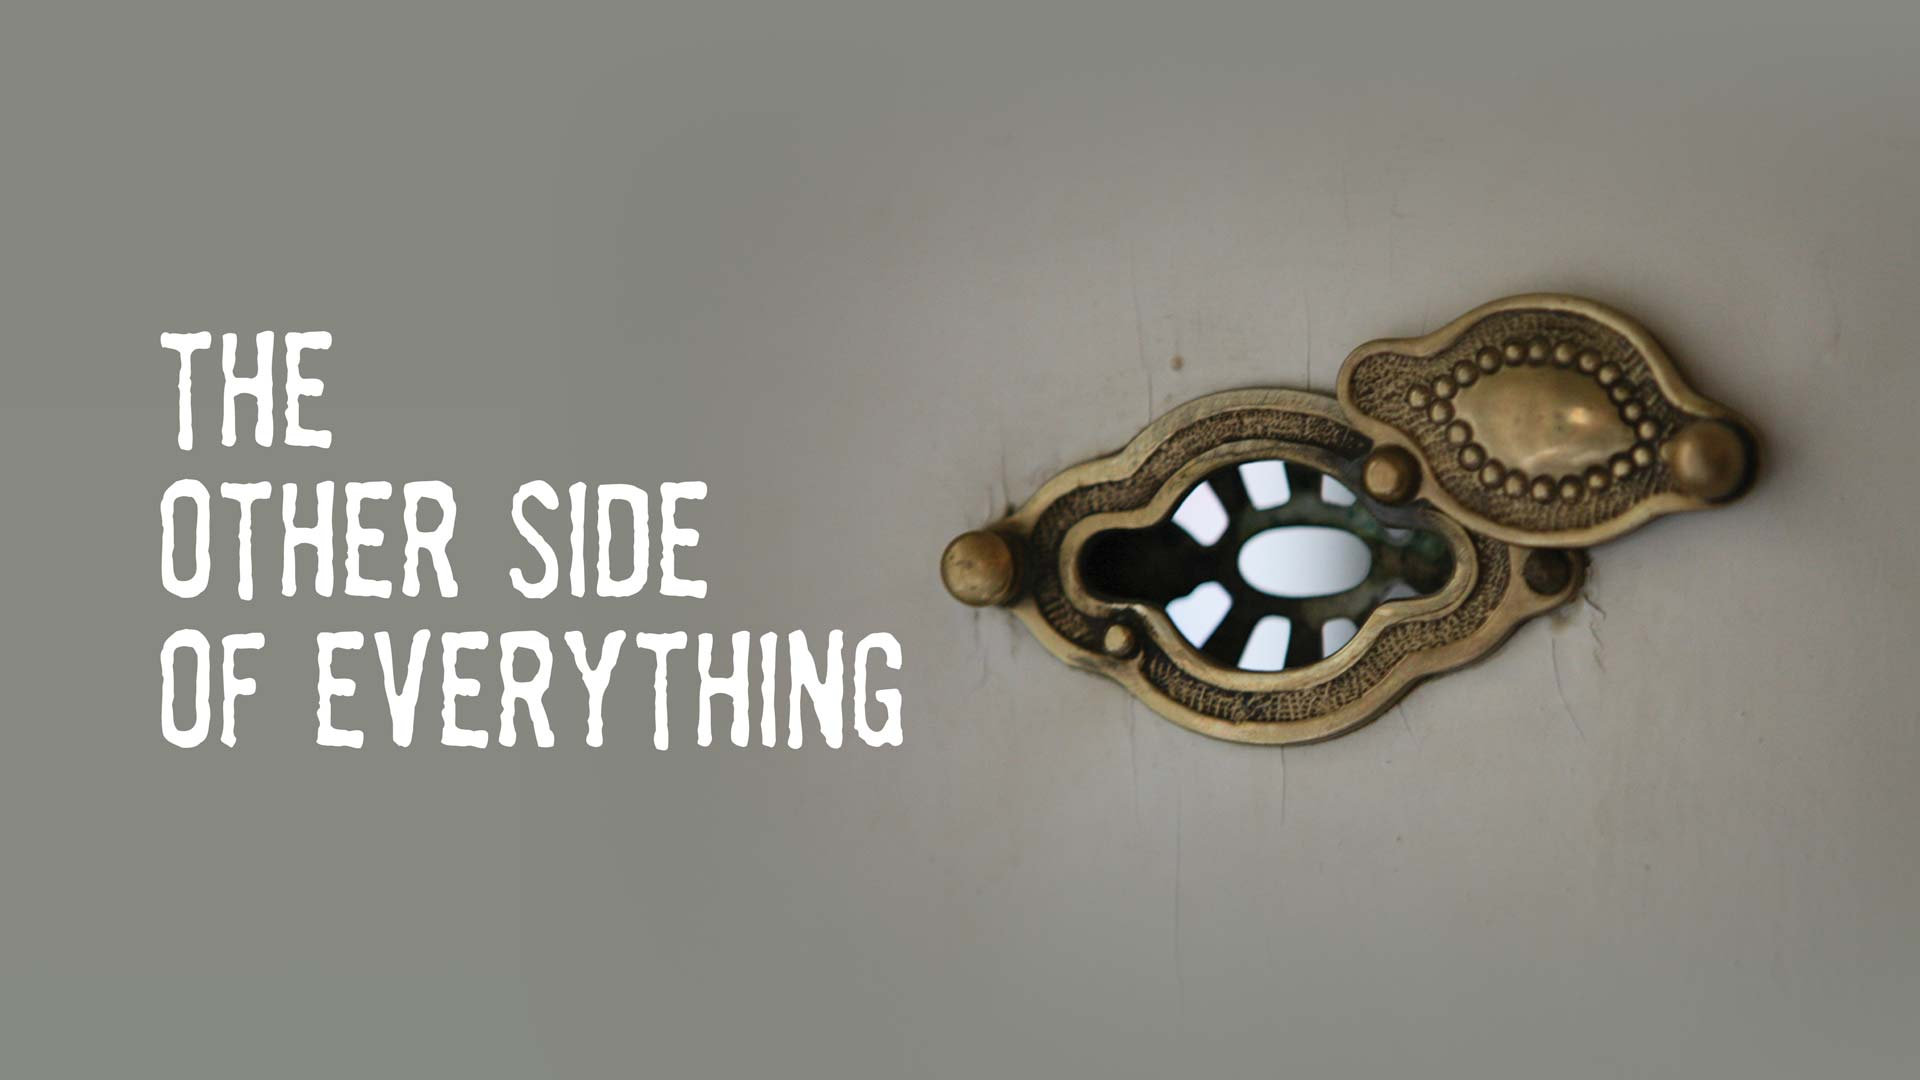 The Other Side of Everything - image